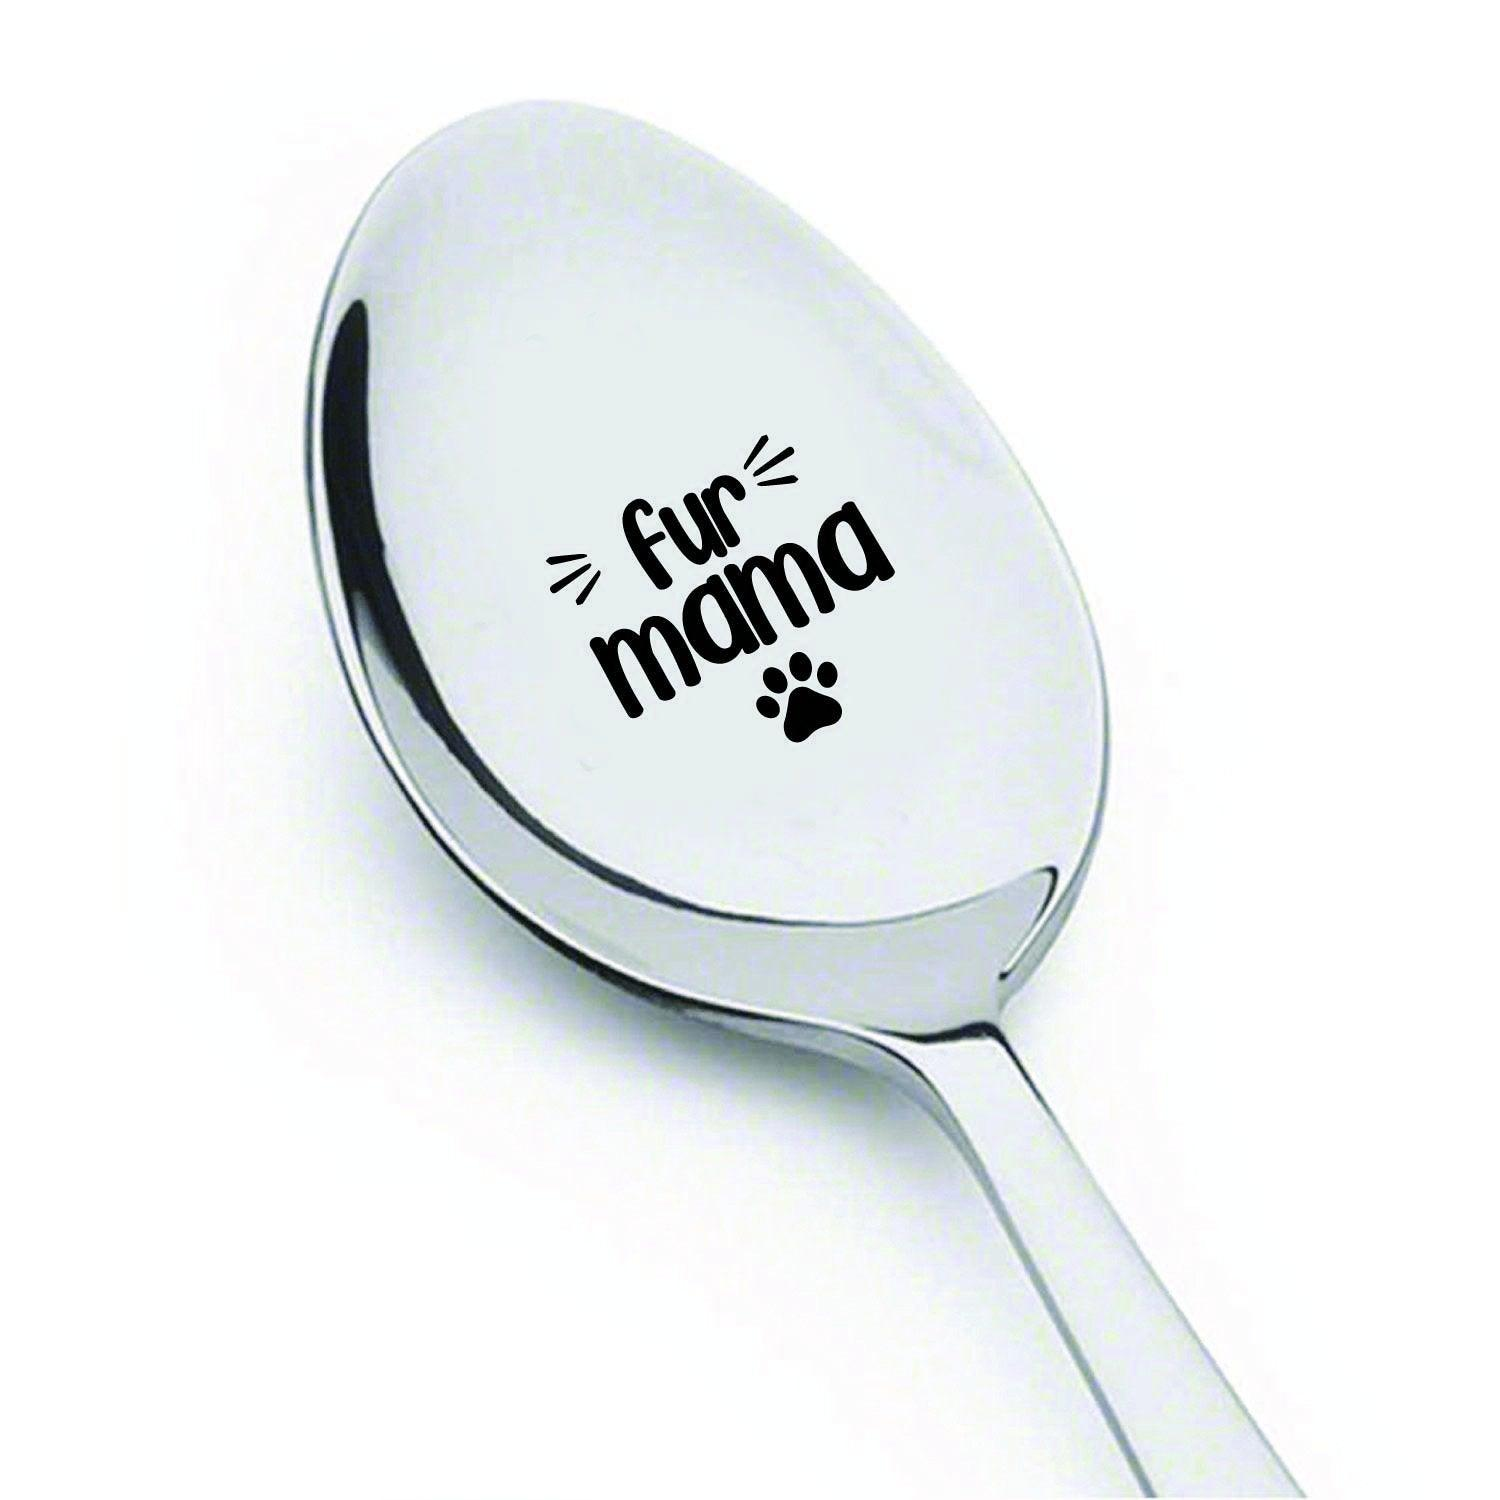 Pet Lover Gifts - Cat Spoon - Funny Pet Gifts - Fur mama - Mother's Day Gifts - Dog Mum Gifts - Dog Lover Gifts - Cat Lover Gifts - New Gifts Fur Mom - BOSTON CREATIVE COMPANY